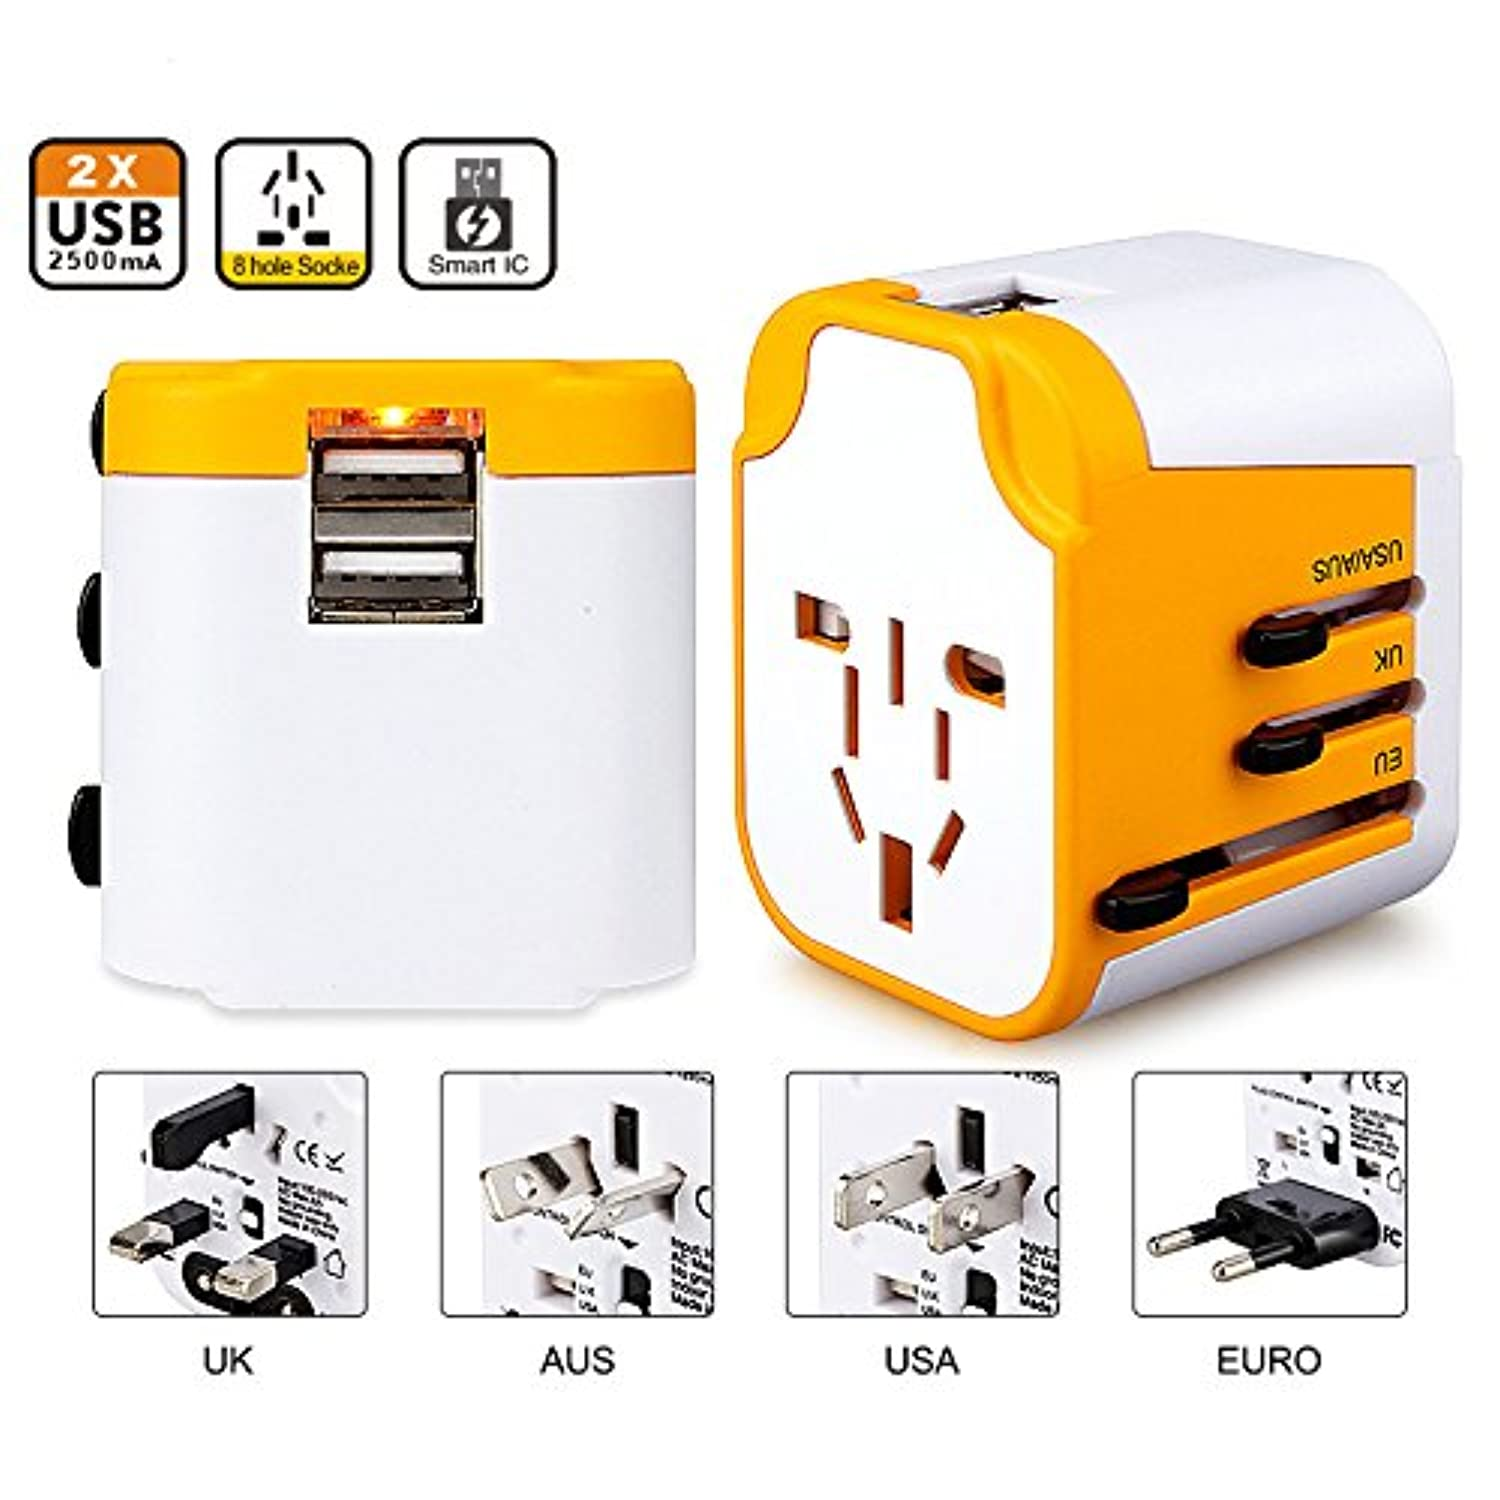 Tpltech 2 Usb Ports Universal Travel Adapter Outlet Plug Electric Charging For Vietnam Japan